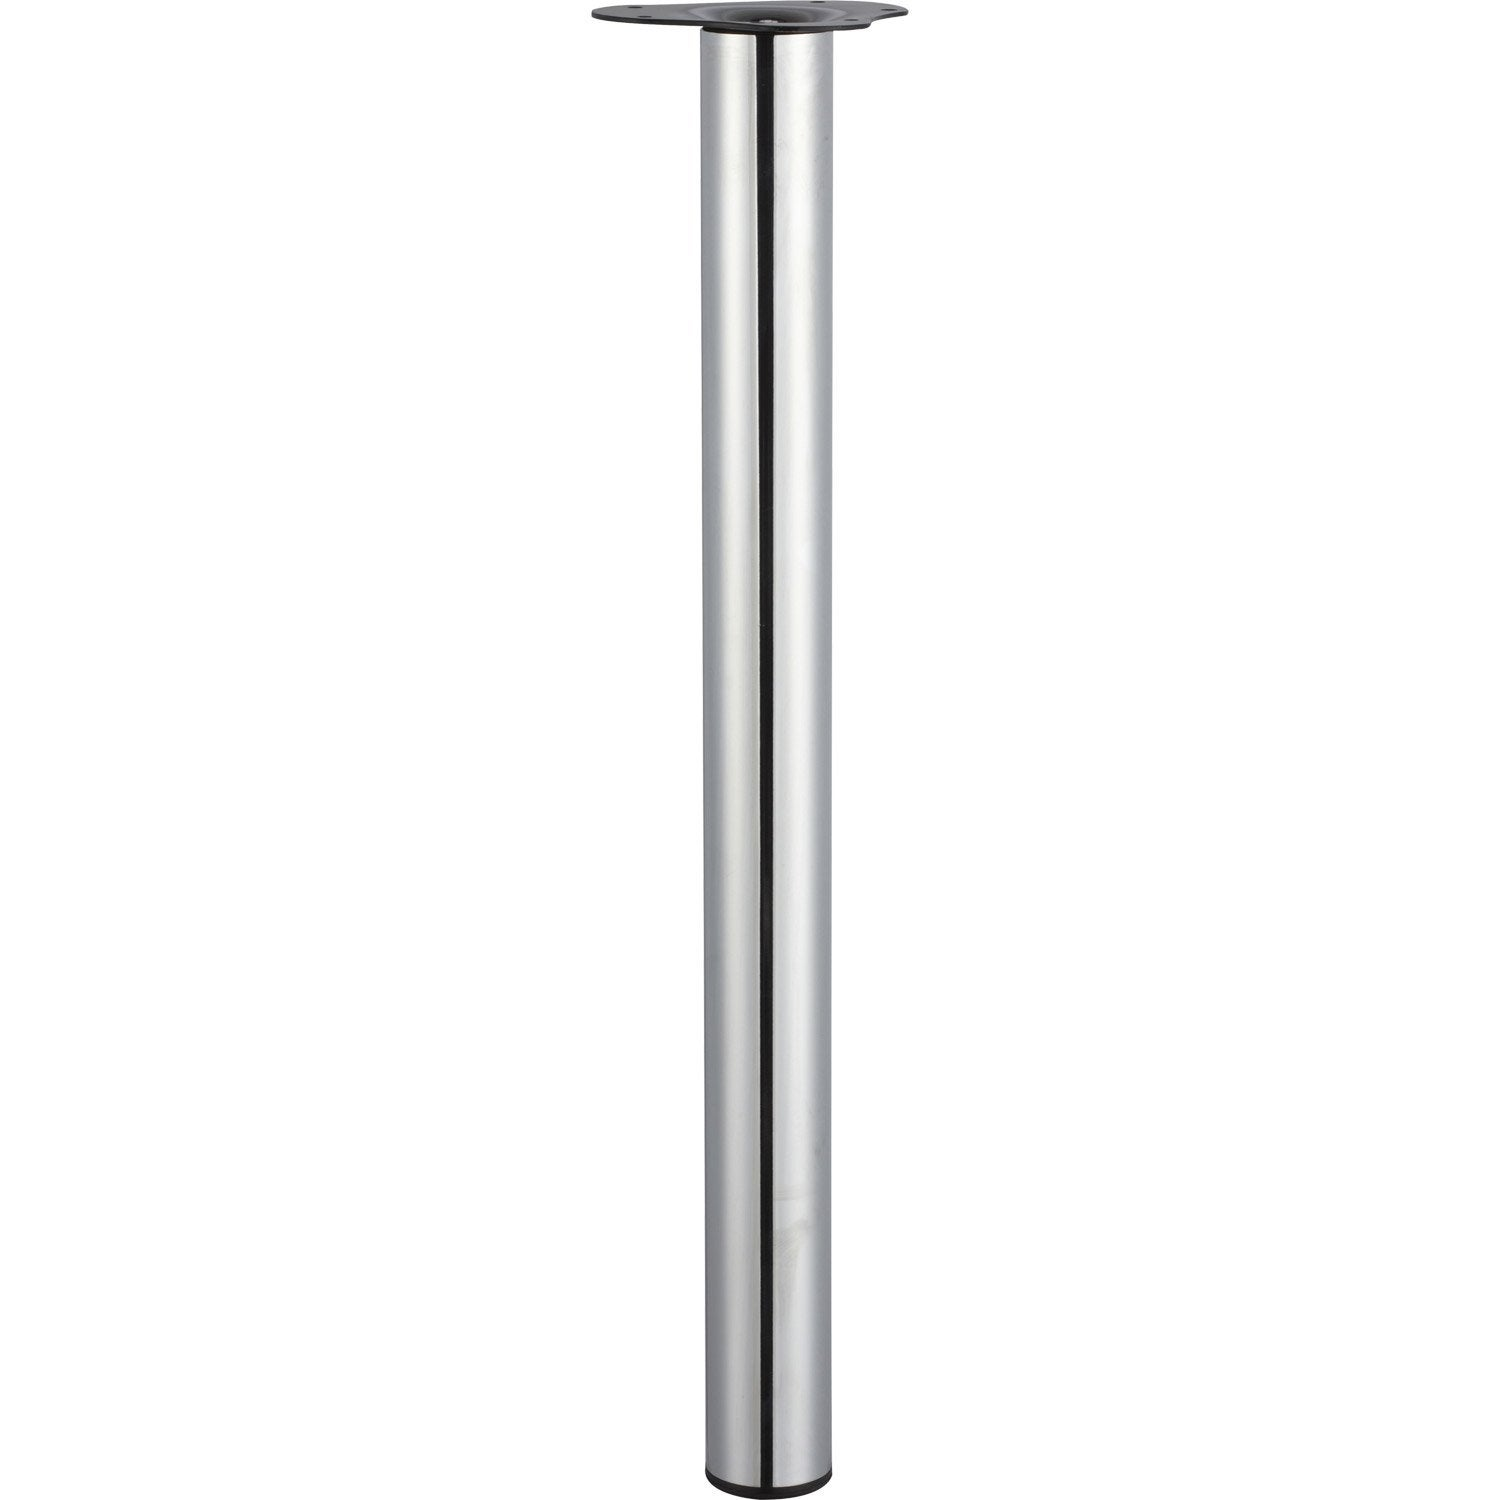 Pied de table cylindrique r glable acier chrom gris de 70 73 cm leroy merlin - Pied de table leroy merlin ...